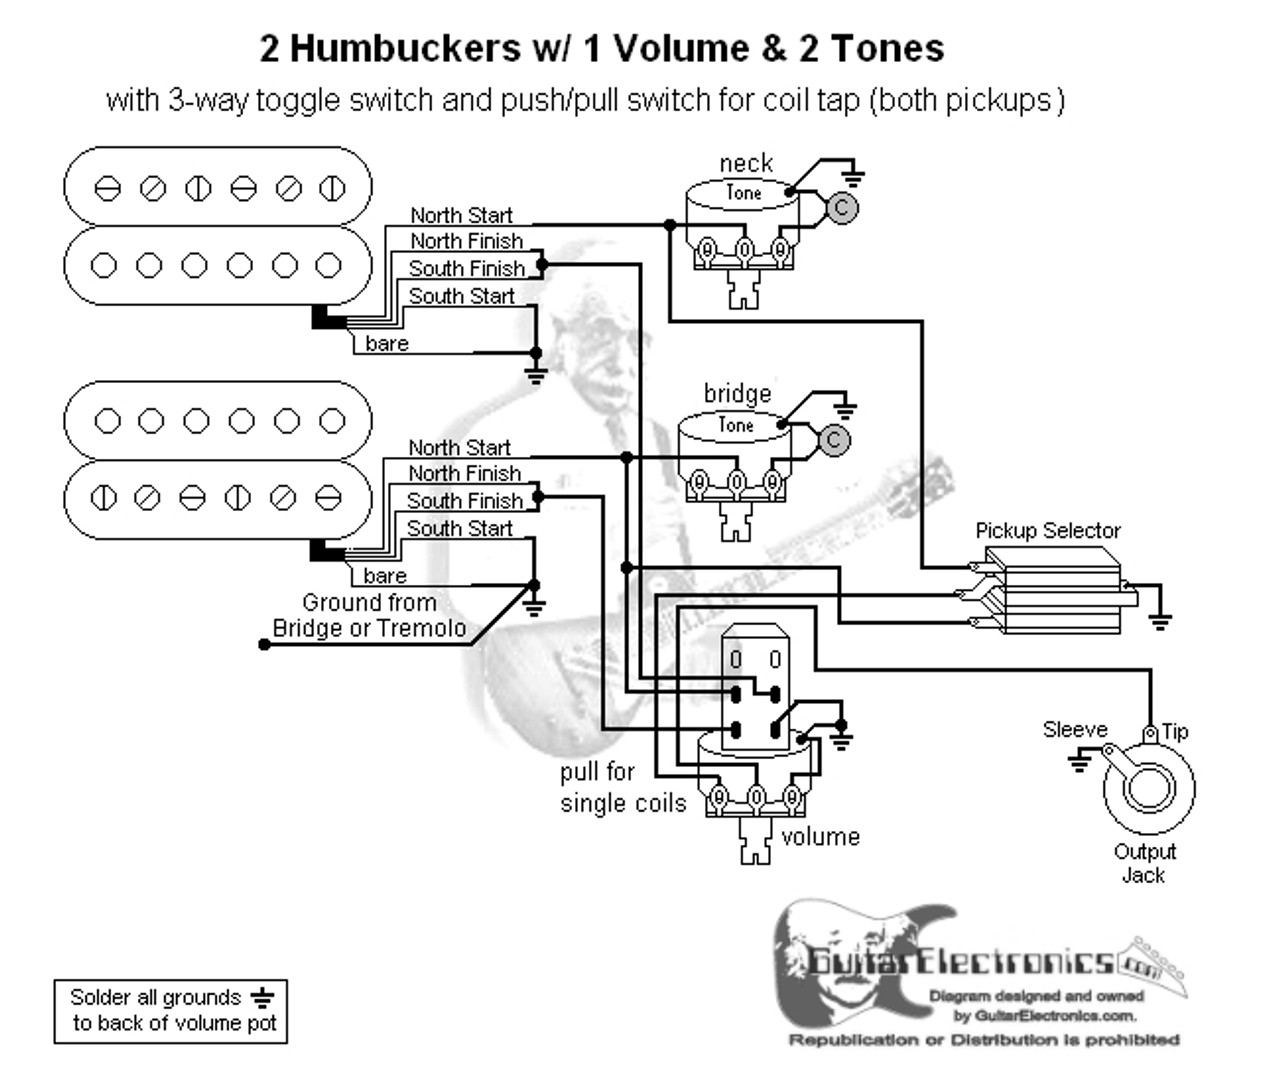 2 Humbuckers/3-Way Toggle Switch/1 Volume/2 Tones/Coil Tap | Two Humbucker With A Push Pull Tap 1 Vol 1 T One Wiring Diagram |  | Guitar Electronics